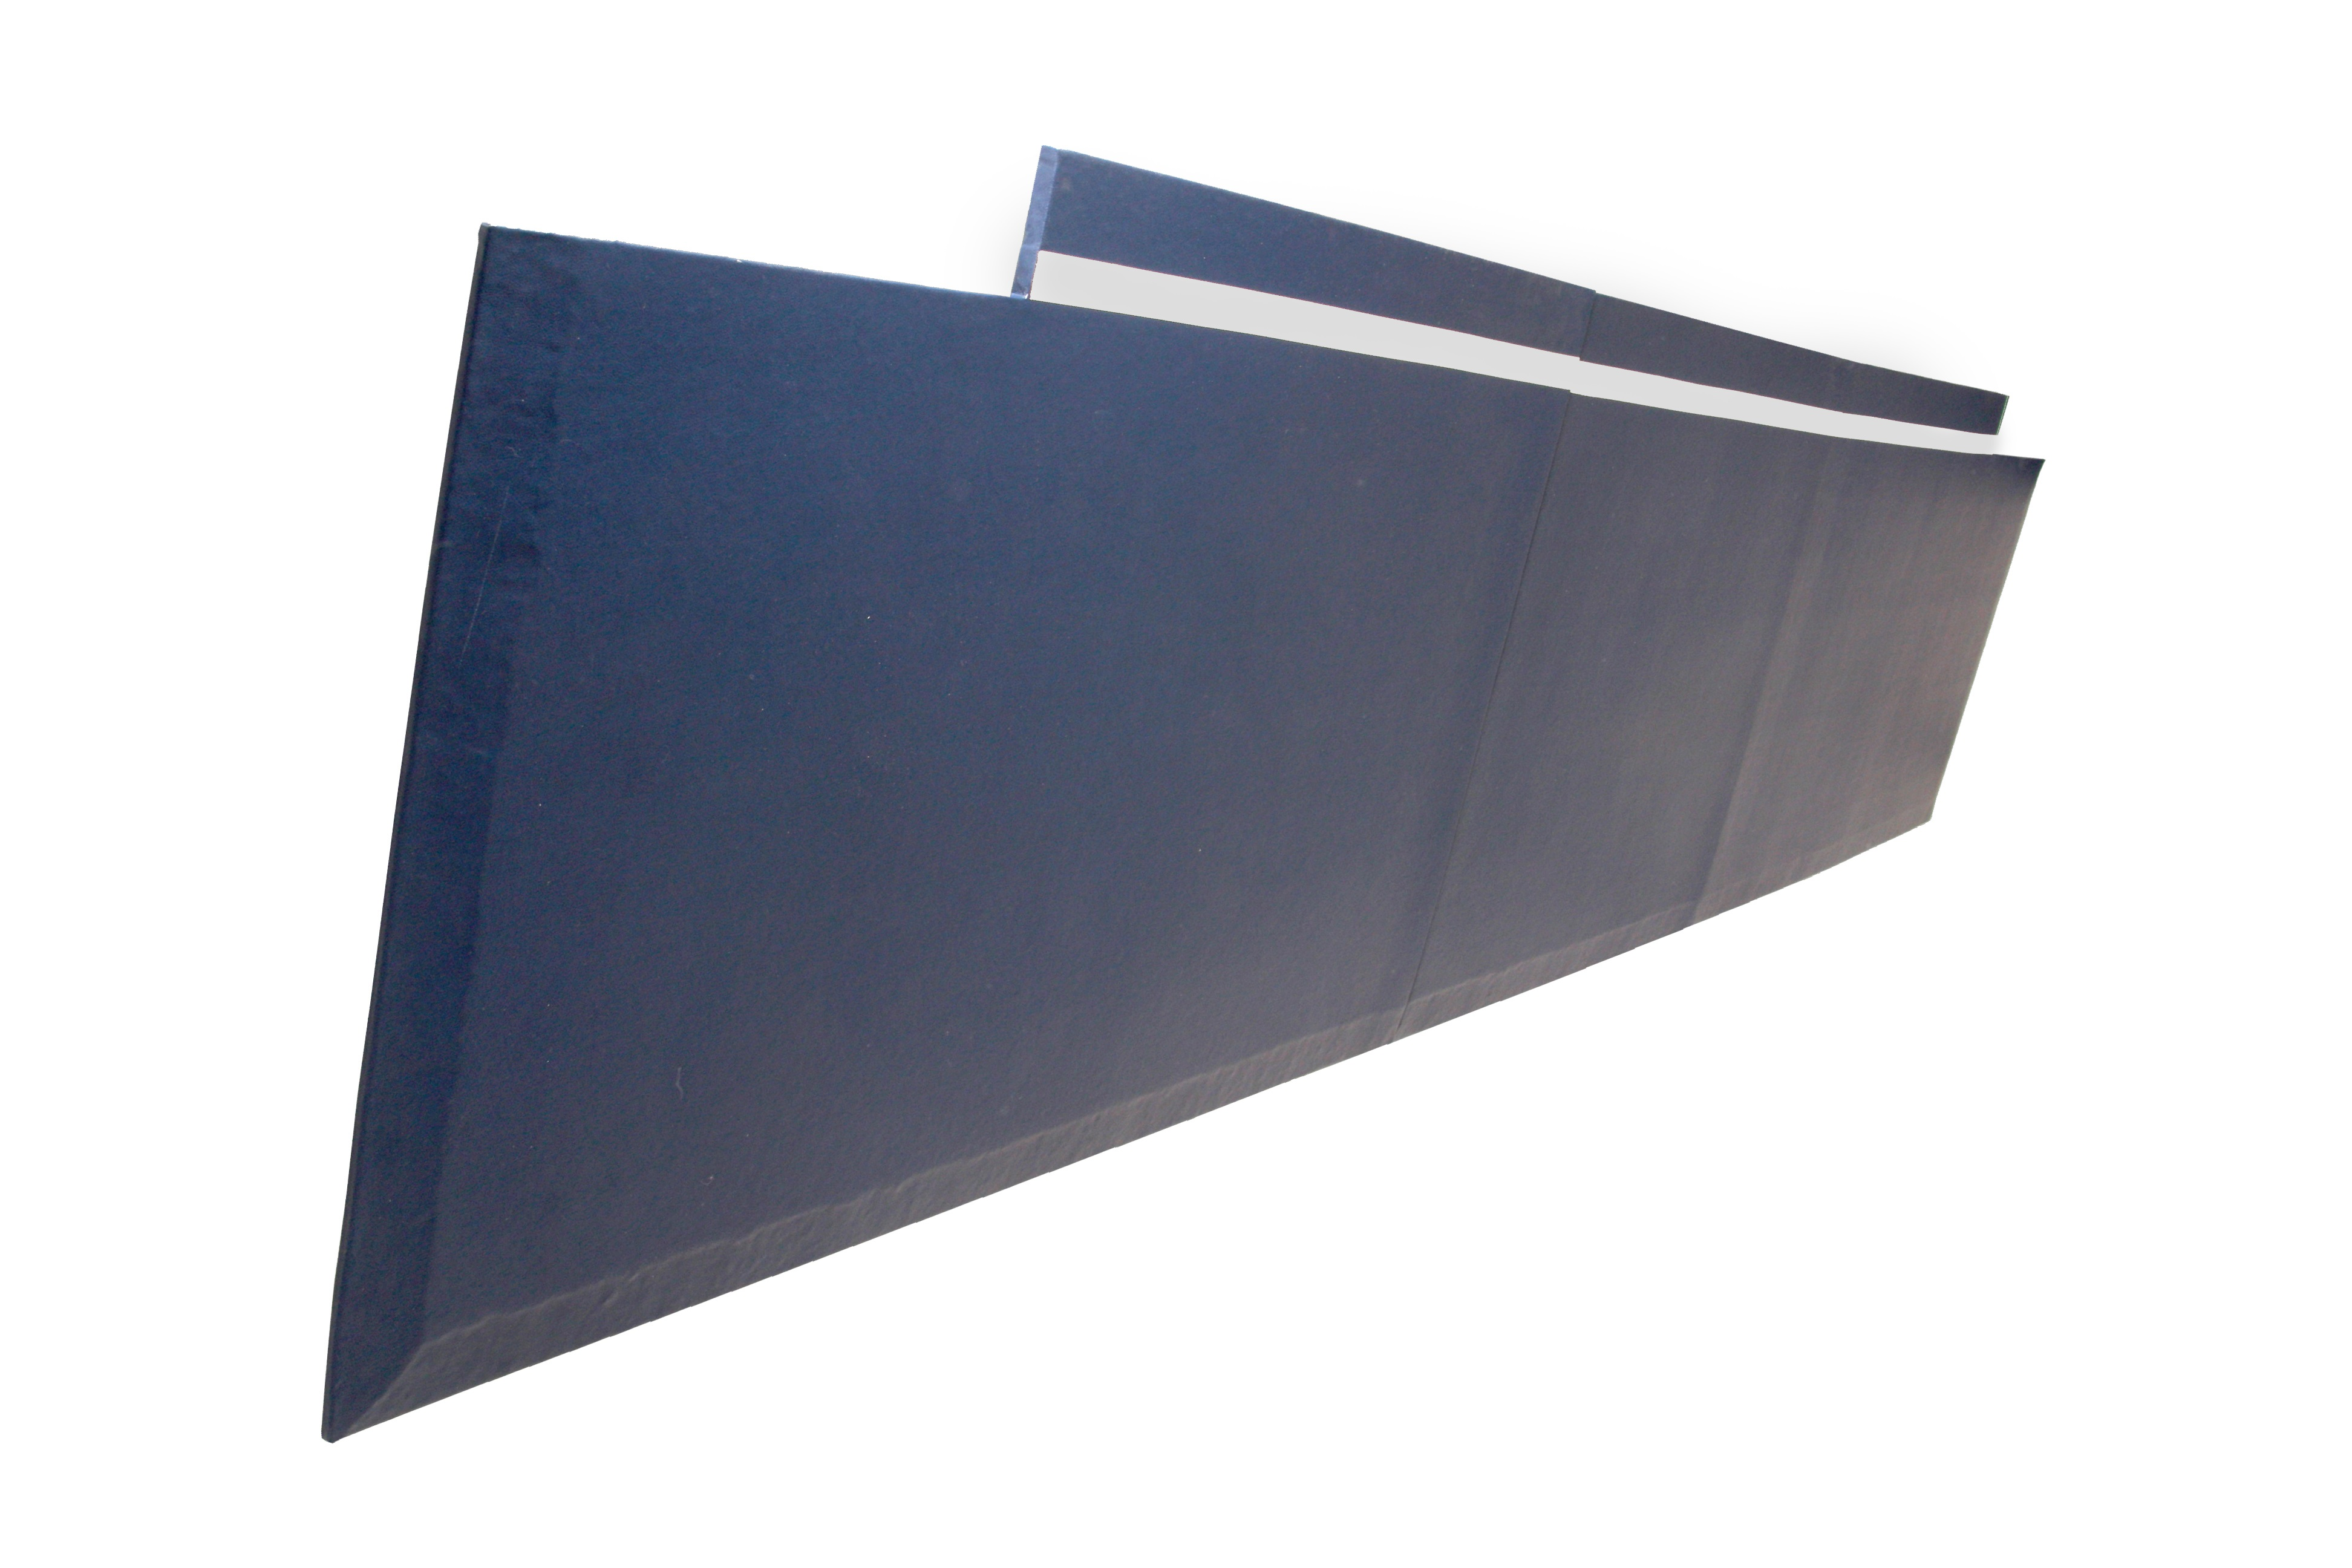 5 a side football goal mats from Gym-Master Ltd, Tameside, Greater Manchester